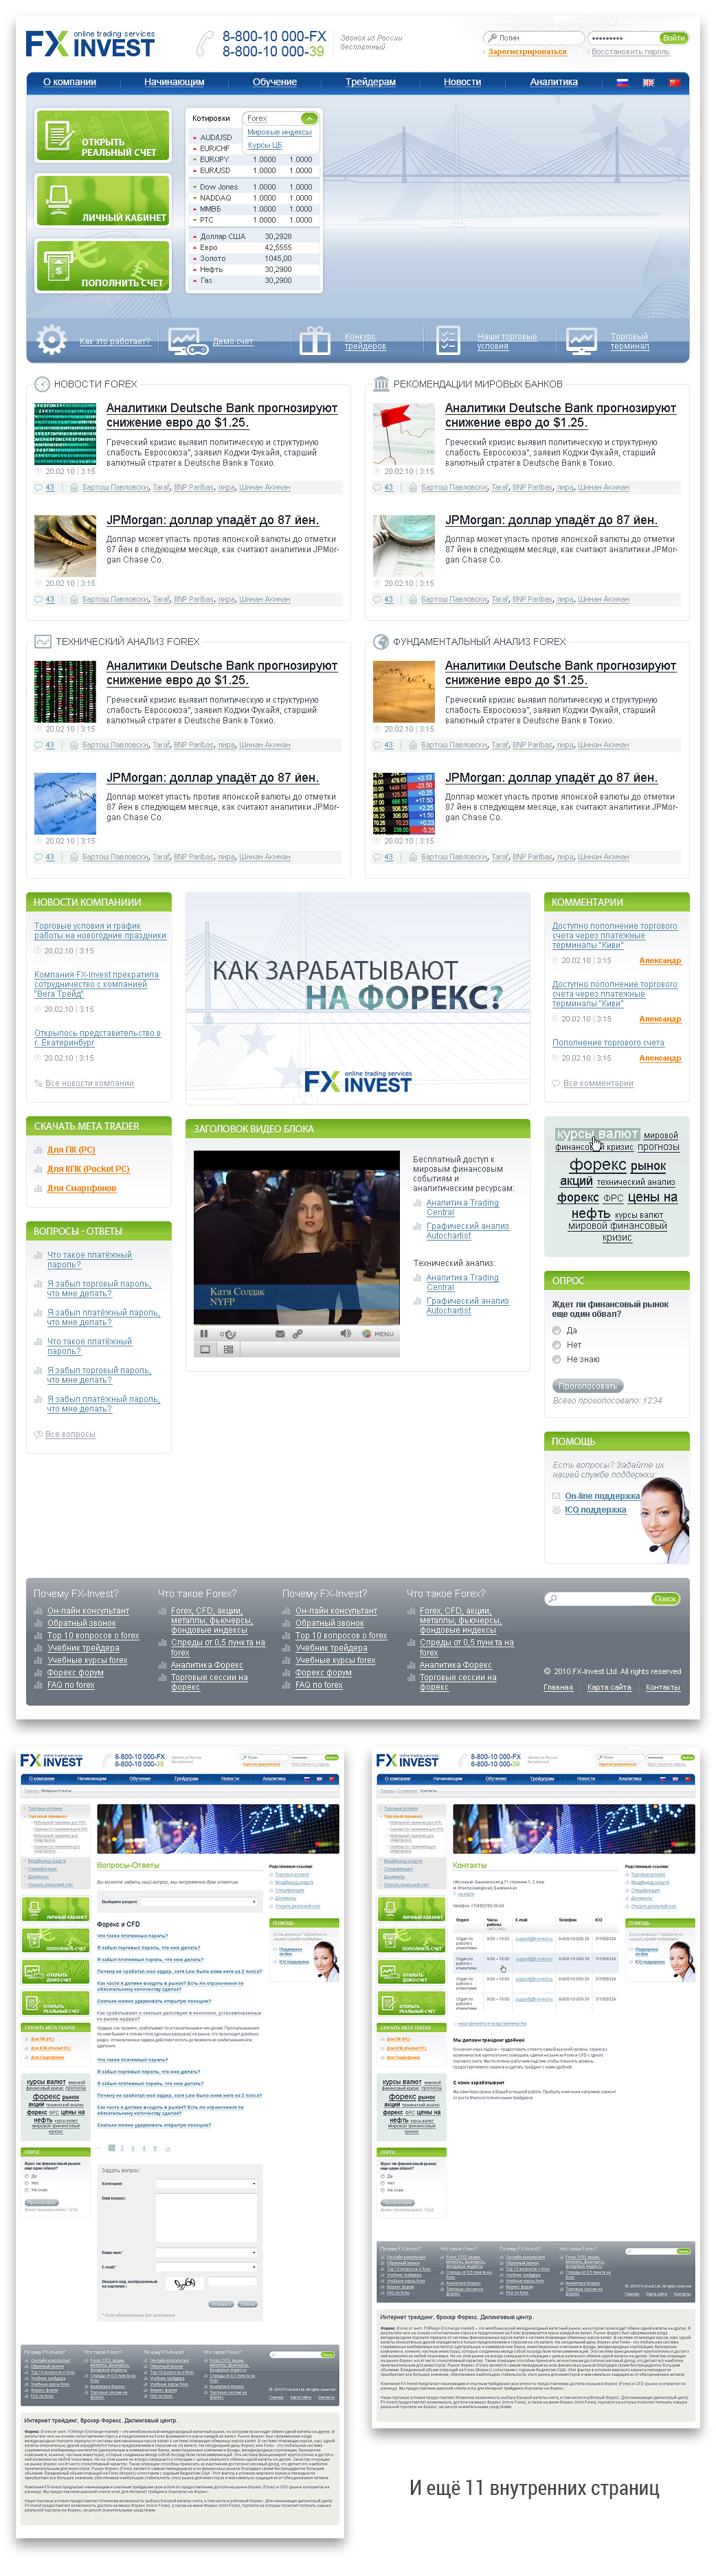 FX Invest - Forex Trading, 14 страниц